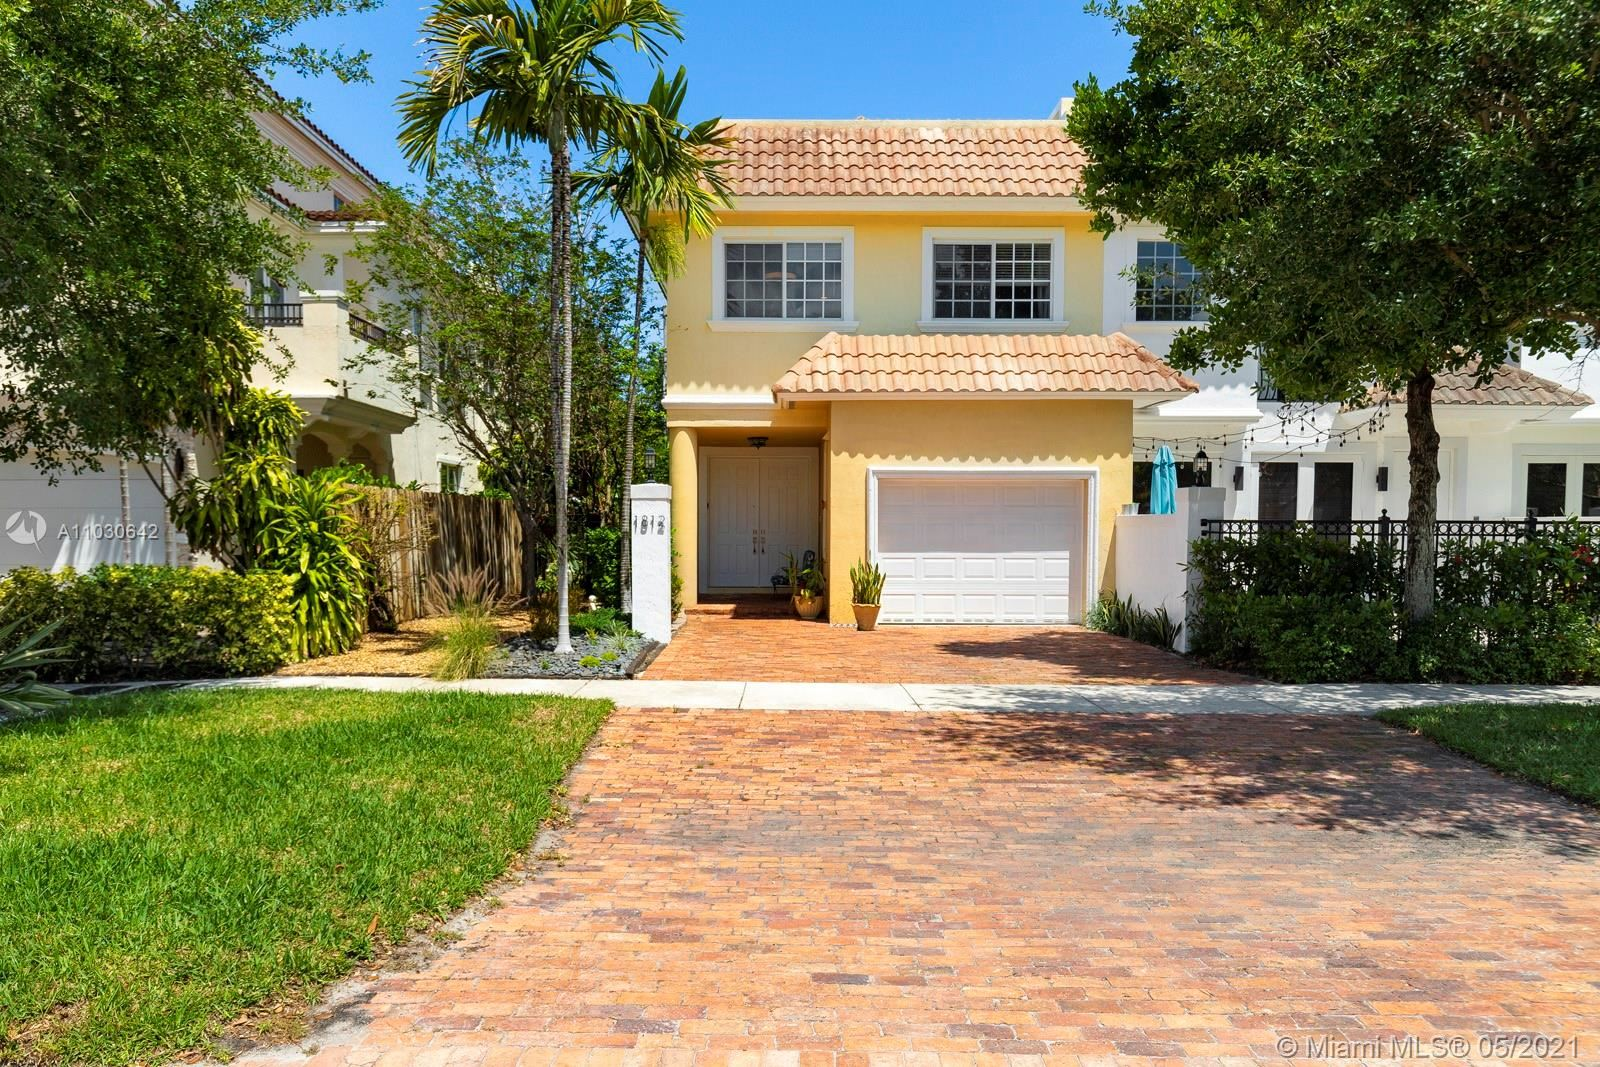 Photo of 1812 NE 26th Ave, Fort Lauderdale, FL 33305 (MLS # A11030642)